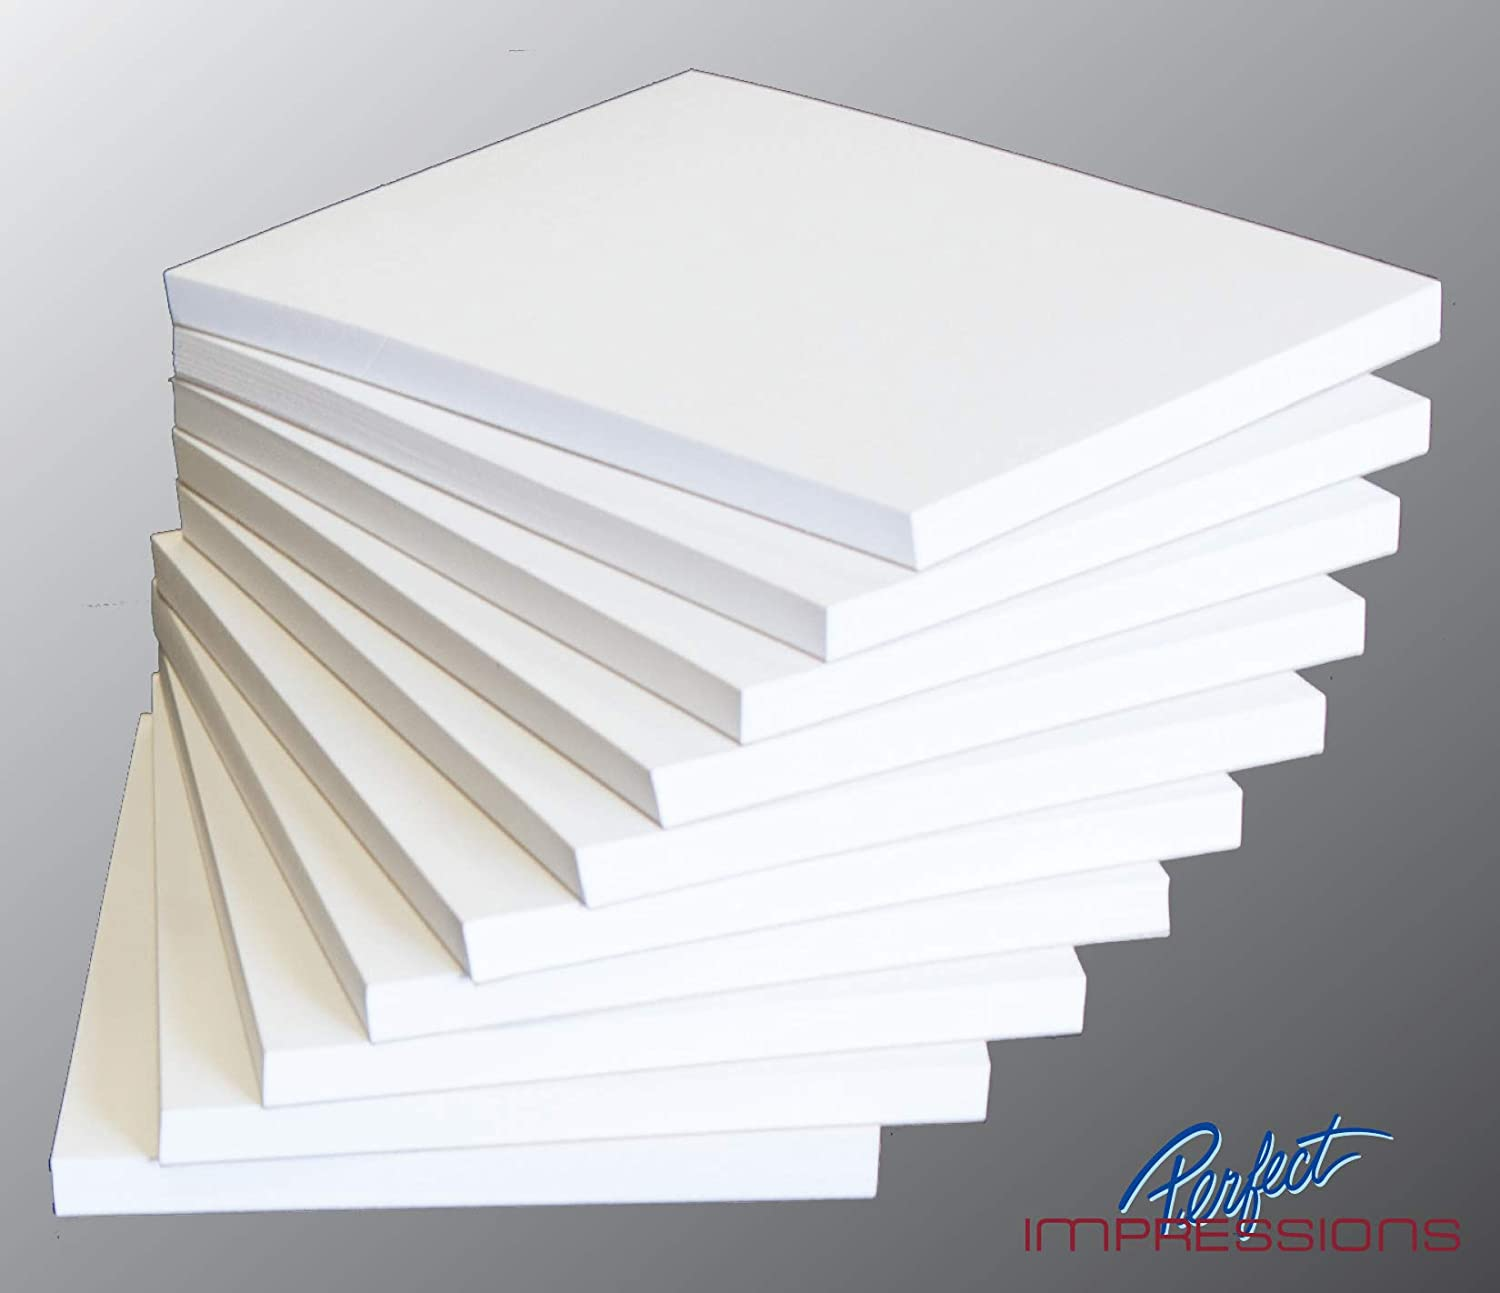 Note Pads - Memo Pads - Scratch Pads - Writing Pads Of 10 Packs With 50 Sheets Each! 8.5 x 5.5